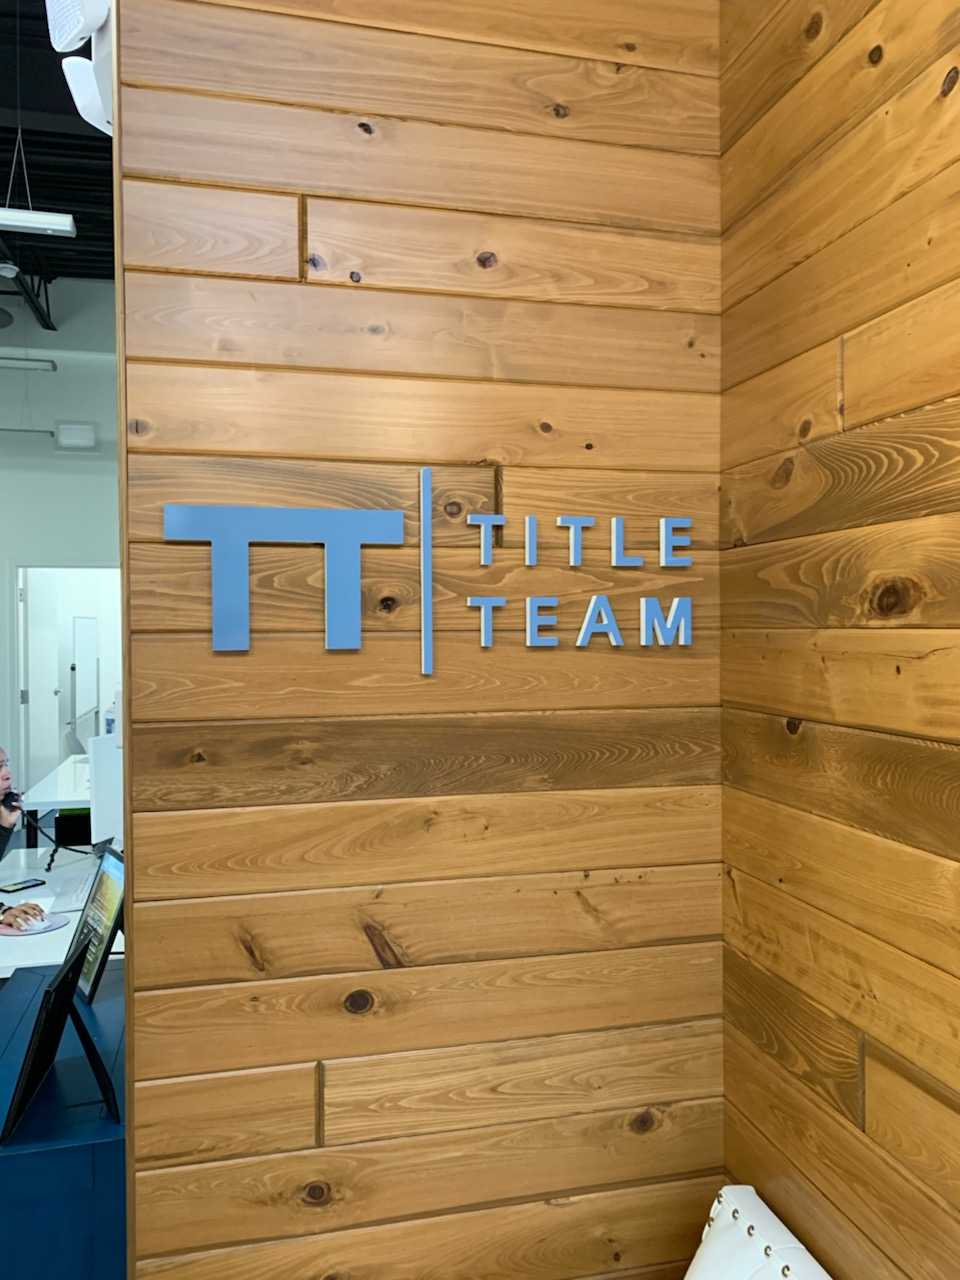 Title Team Wall Sign